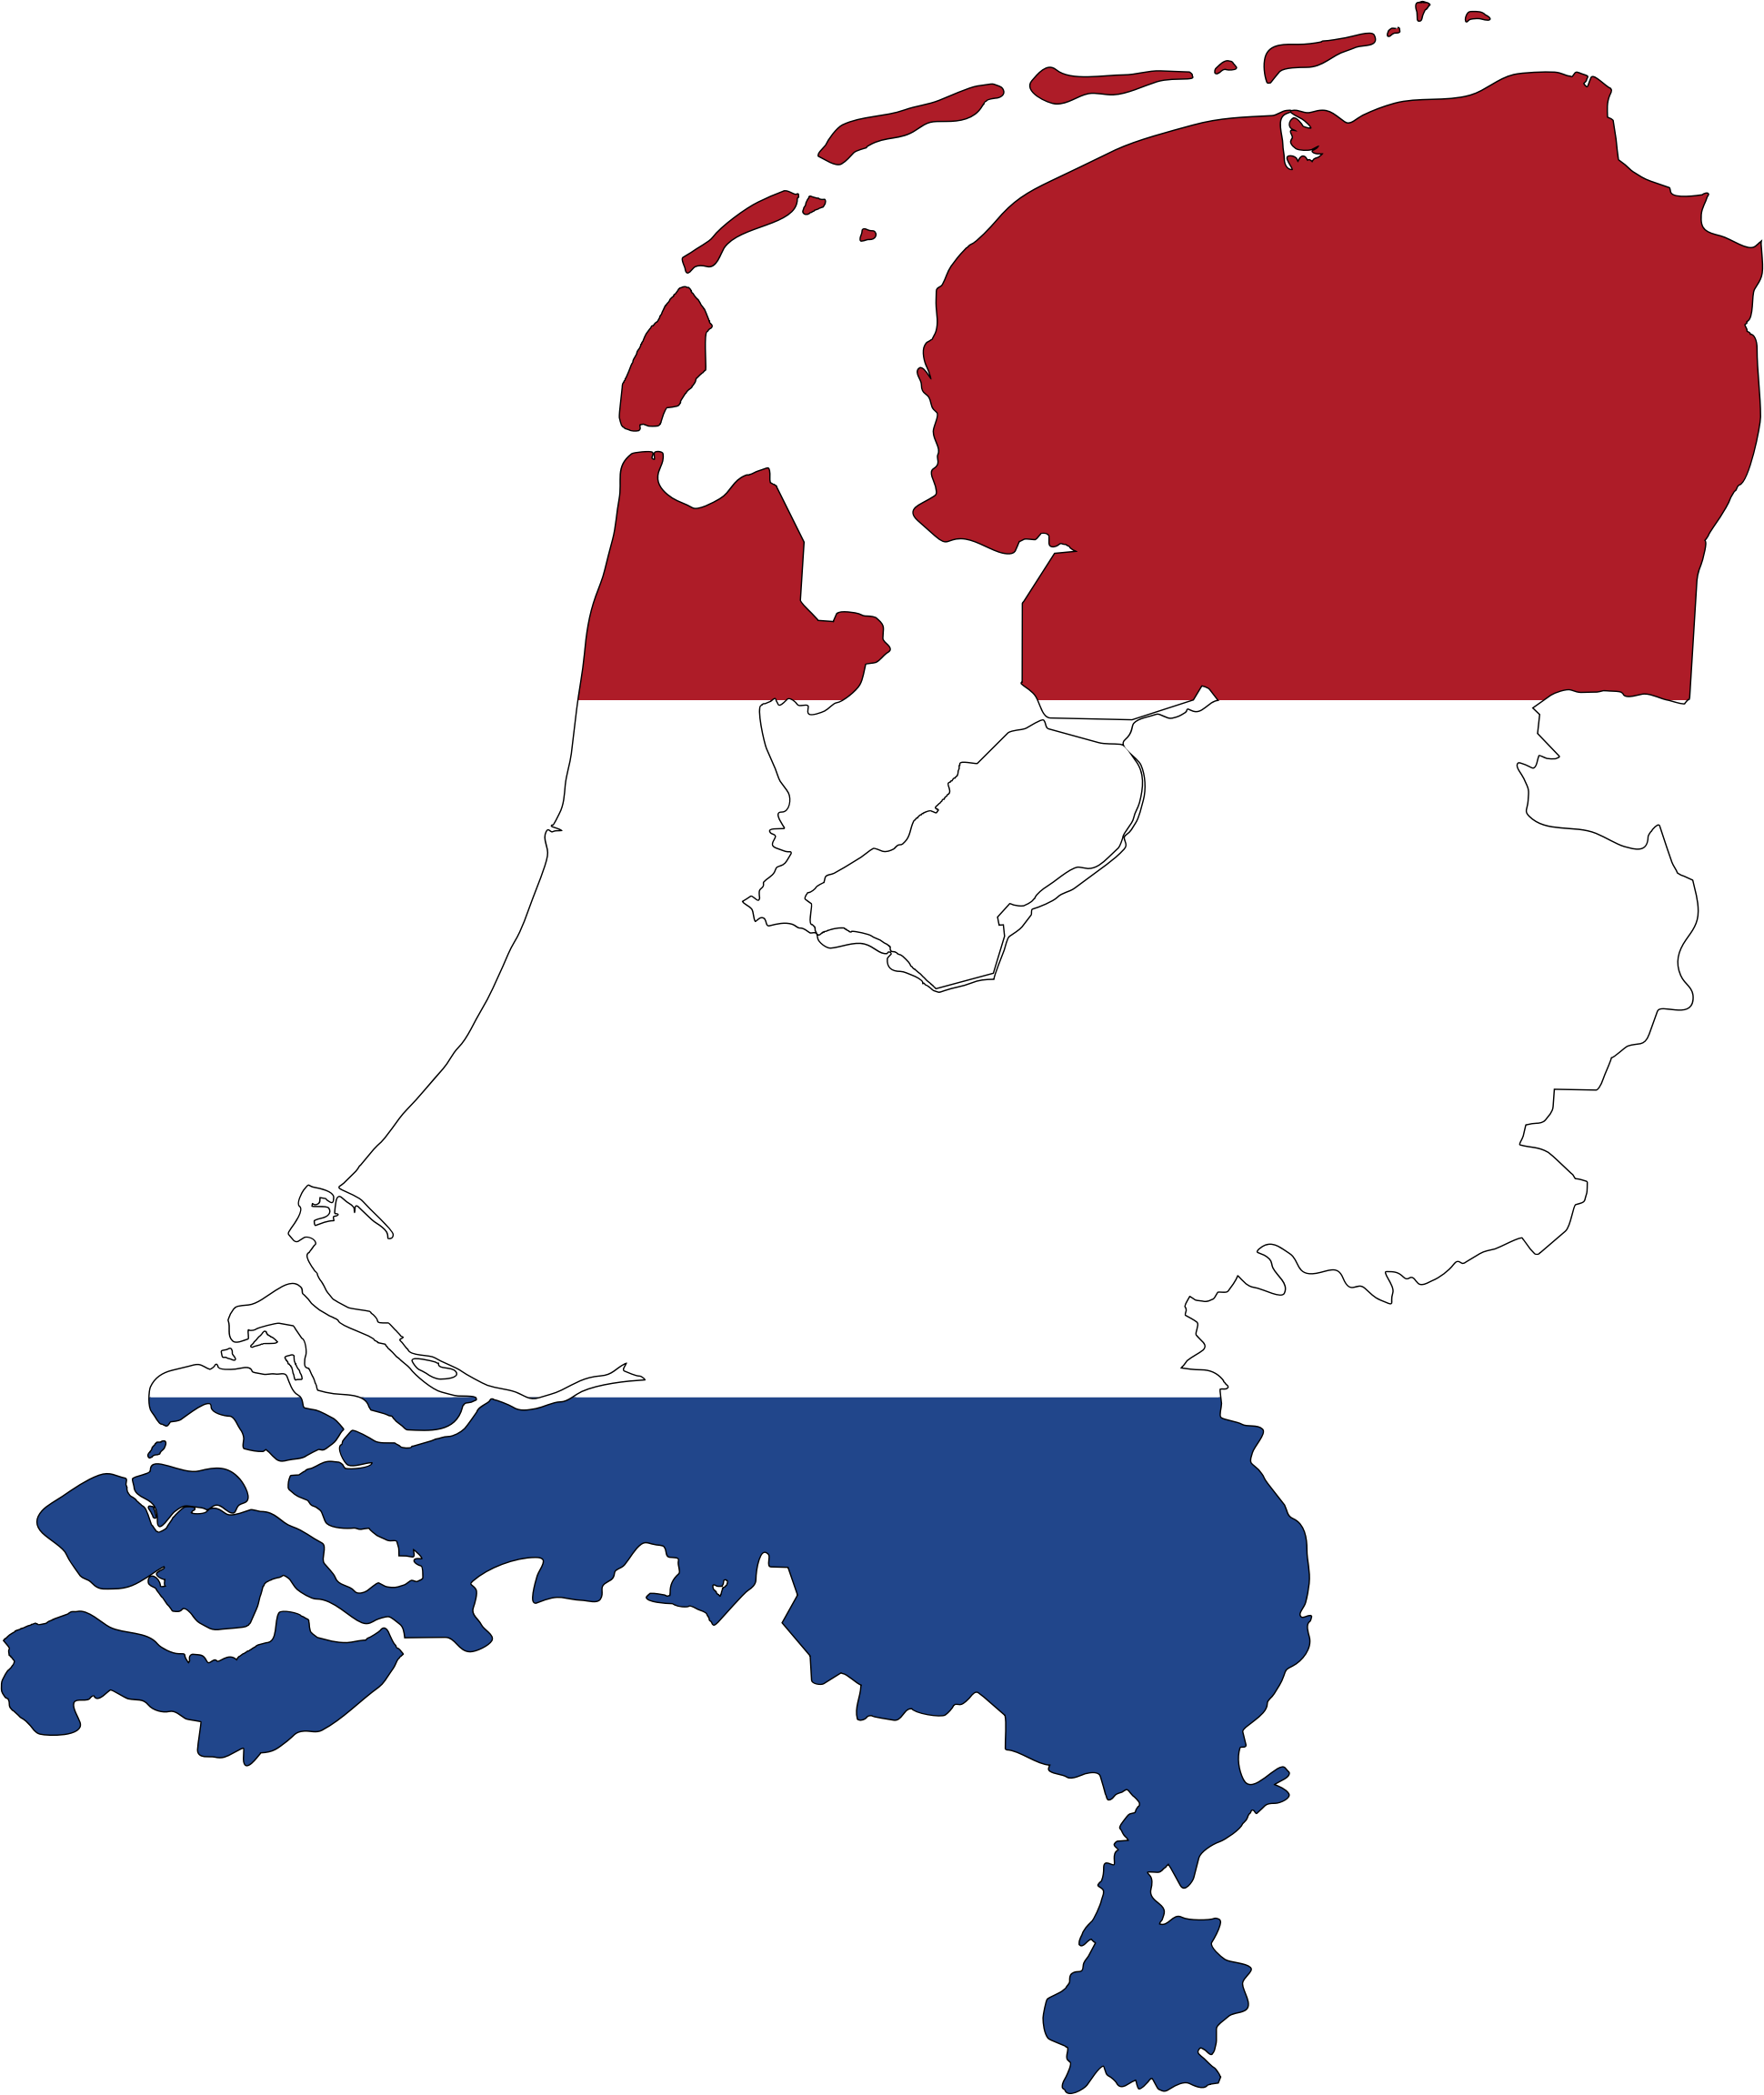 Clipart Netherlands Map Flag With Stroke - Netherlands map